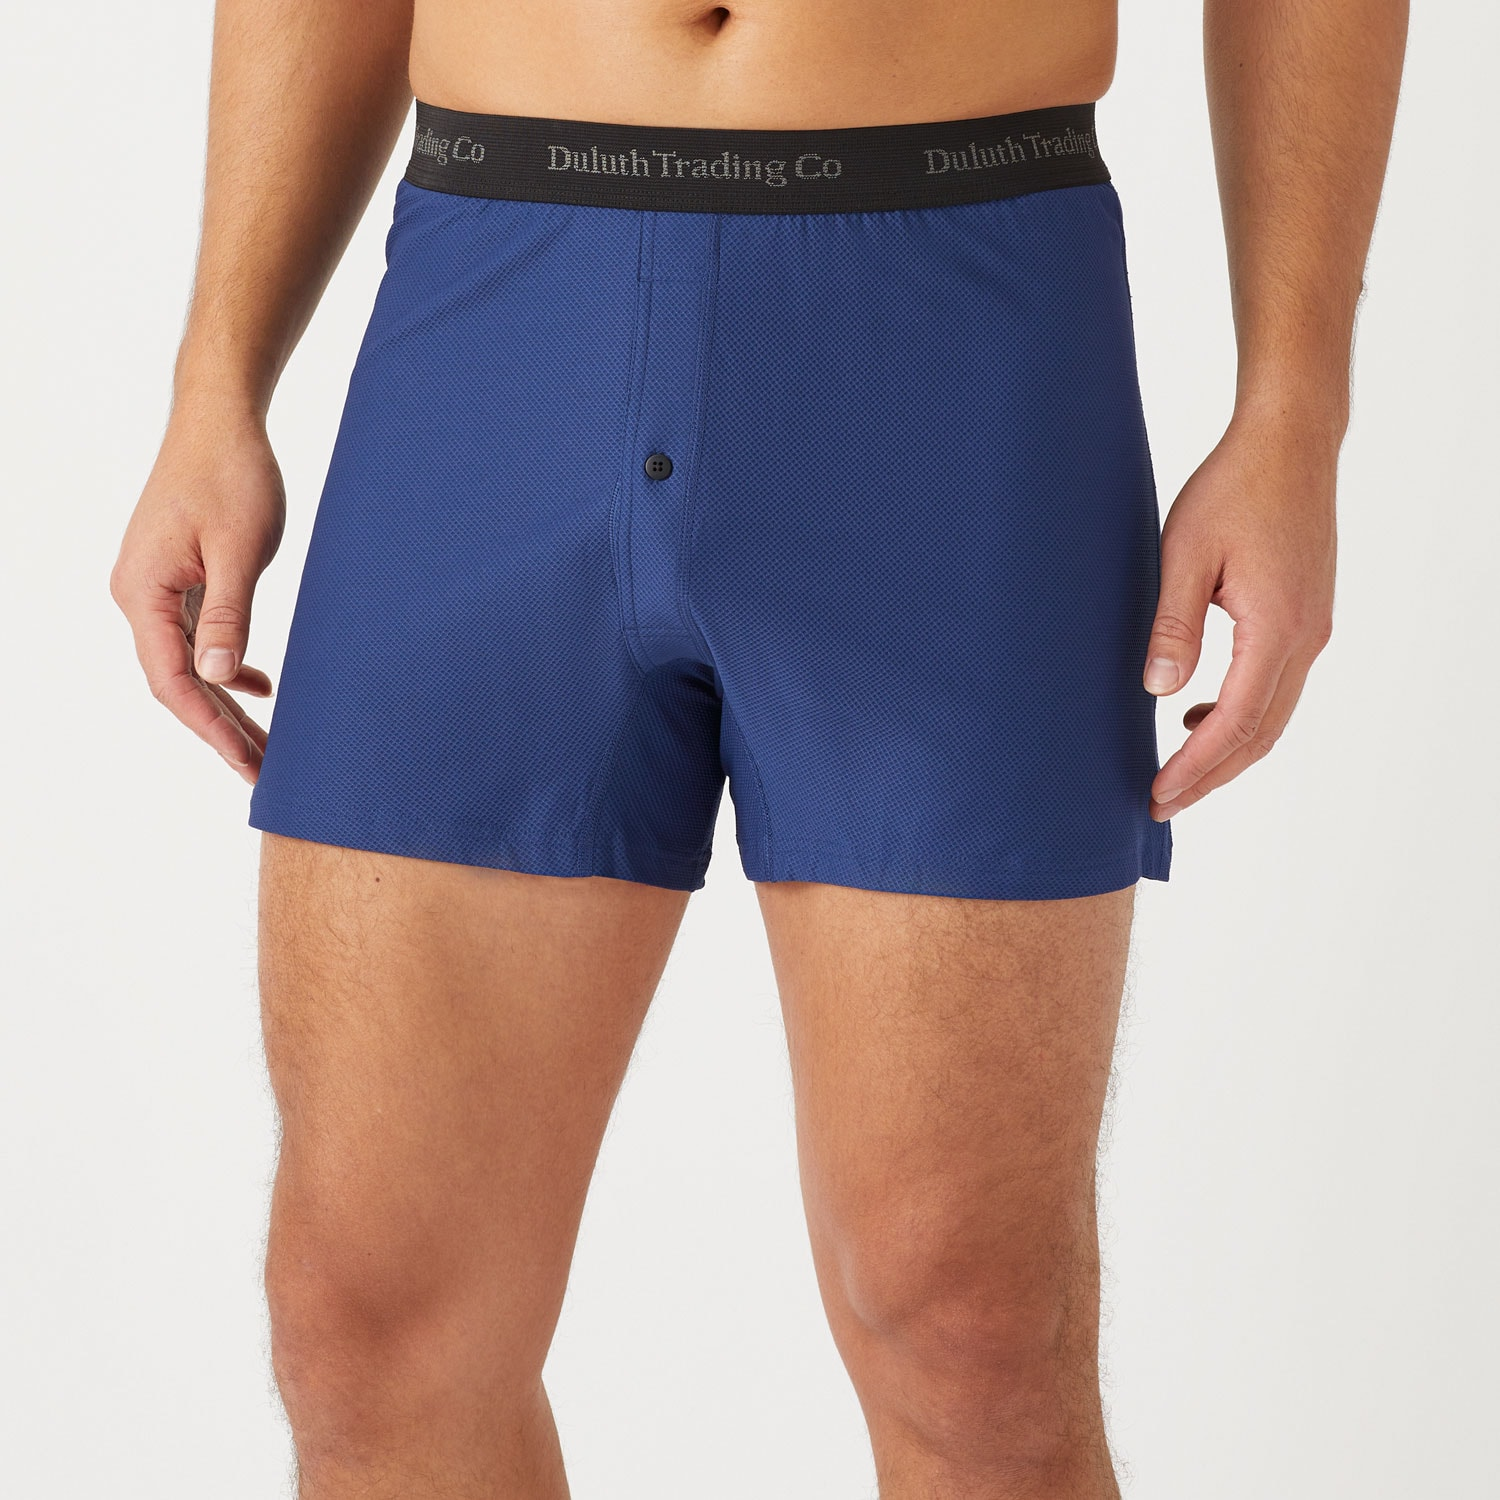 f2f10bd51c04 Men's Buck Naked Performance Boxer Briefs | Duluth Trading Company